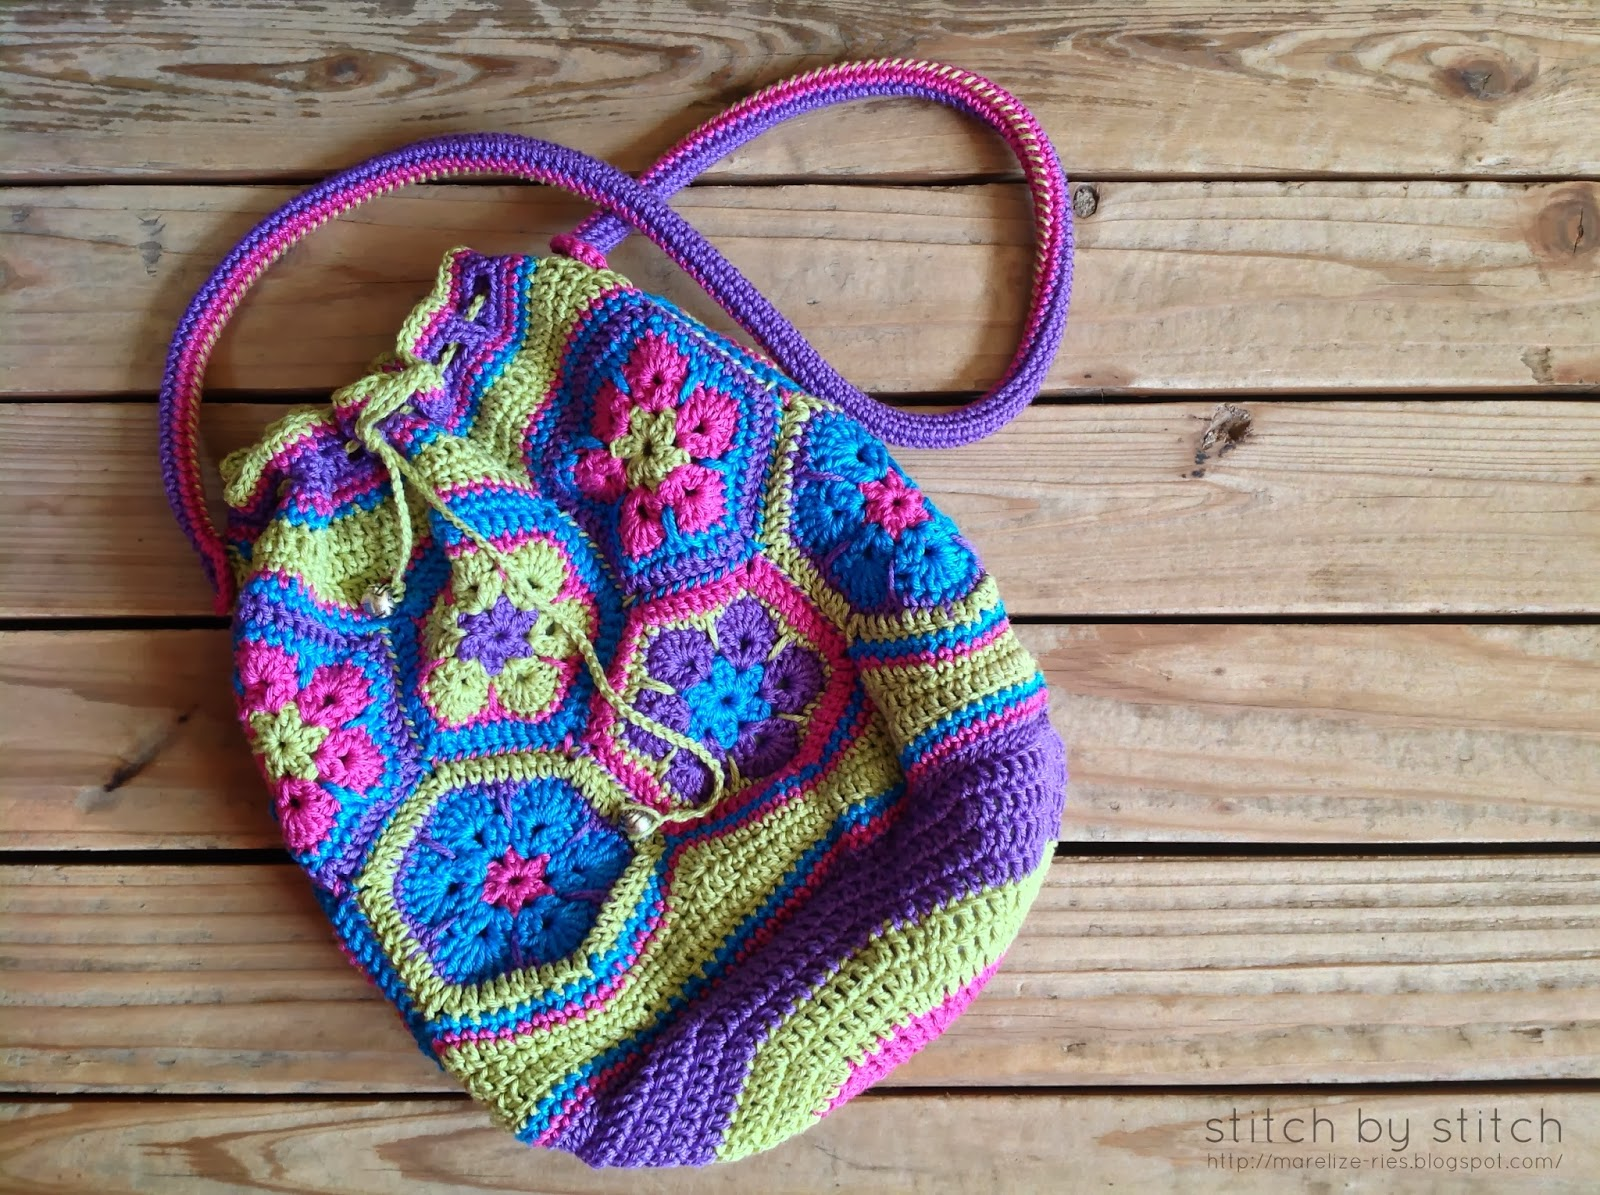 Lining Crochet Bag : ... to a larger bag as well. Hope you enjoy making your very own bag